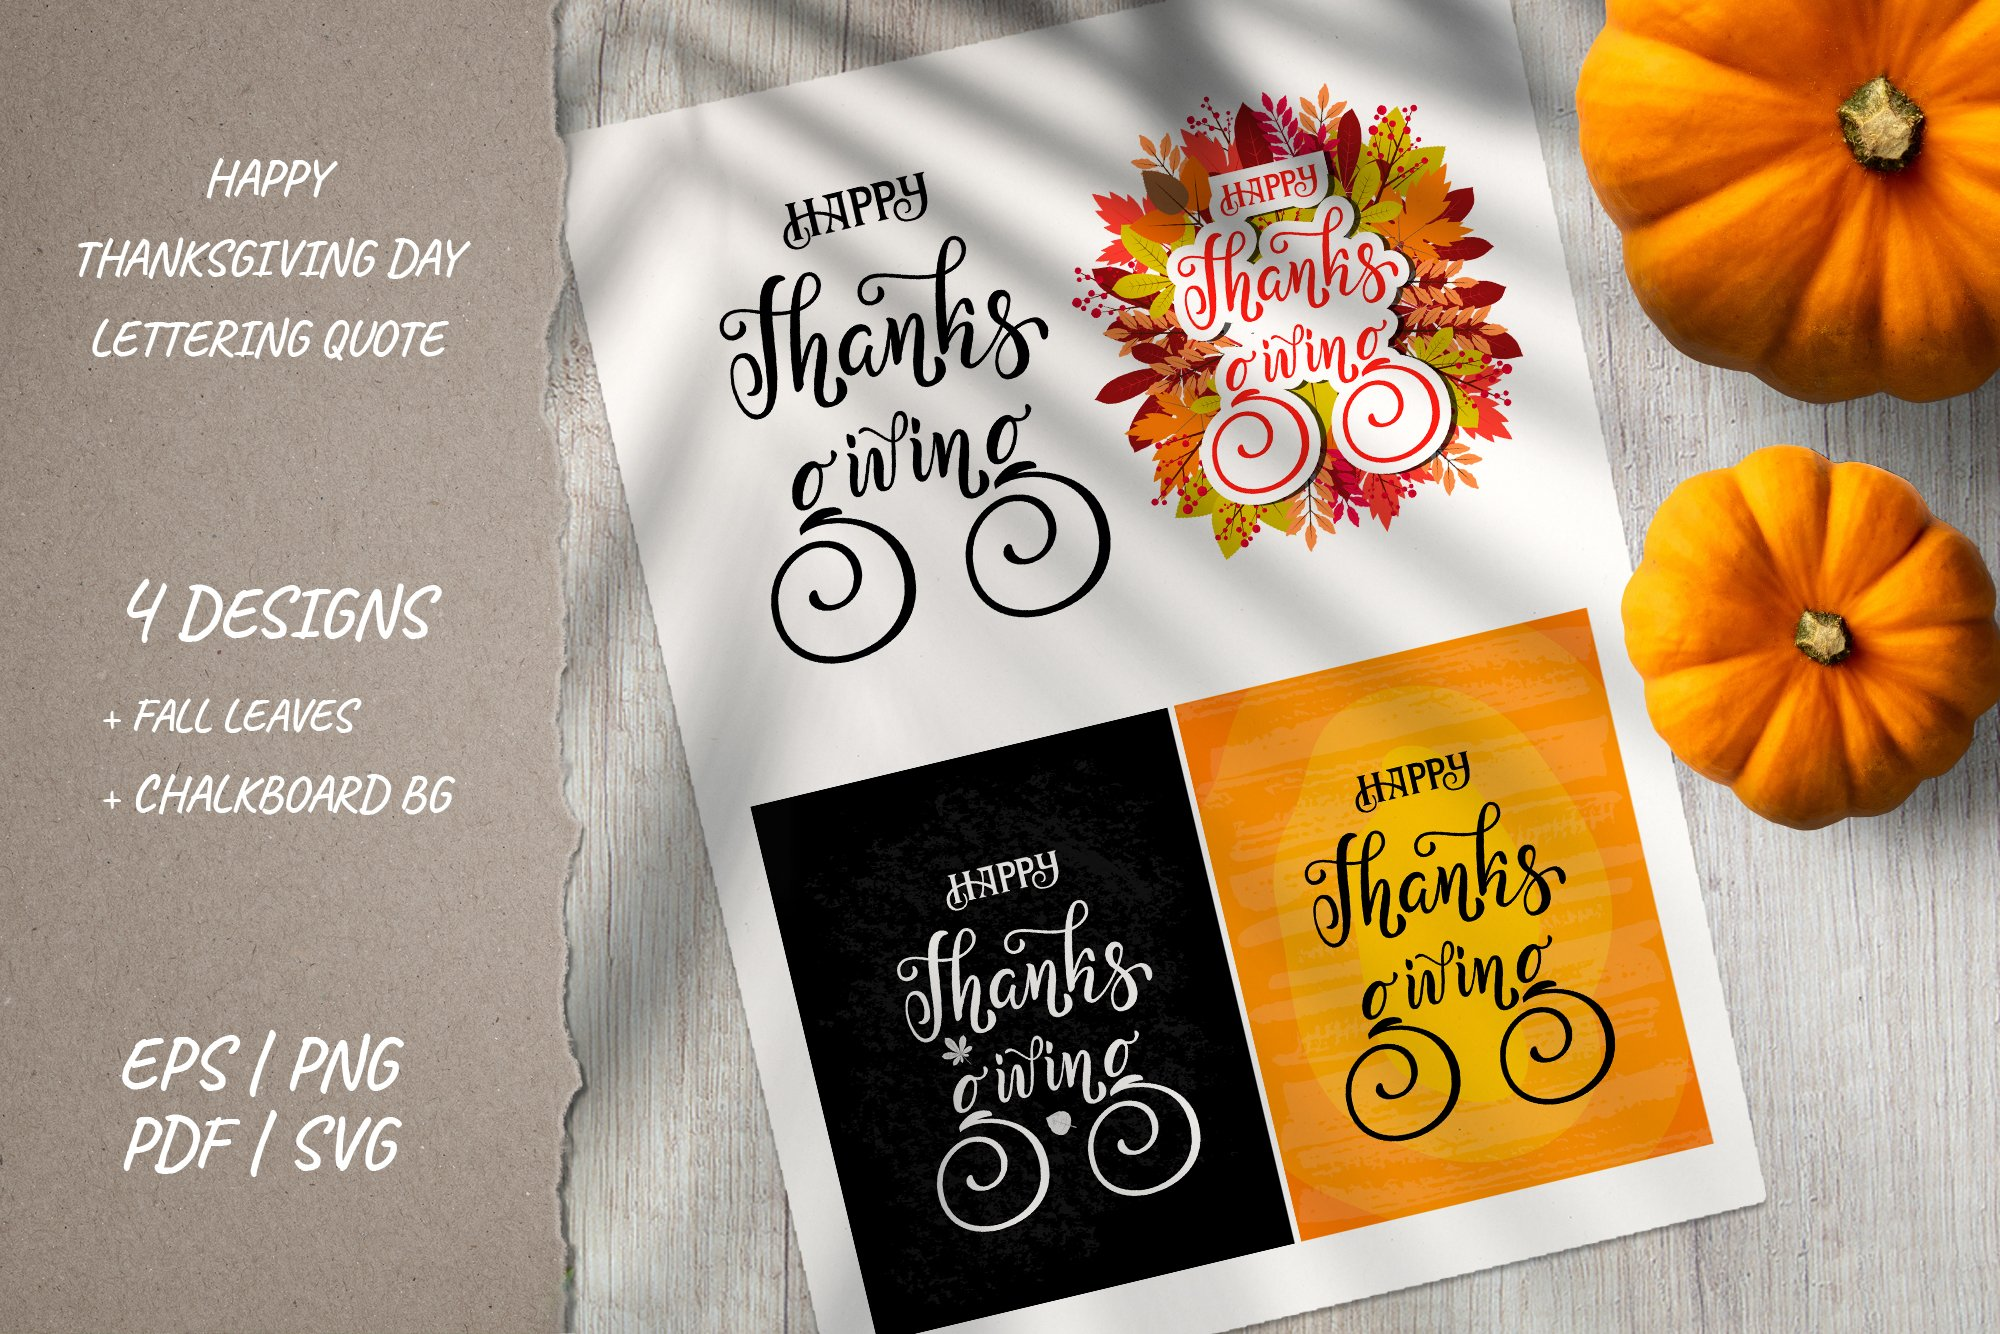 Happy Thanksgiving Day quote   4 designs   EPS PNG PDF SVG example image 1